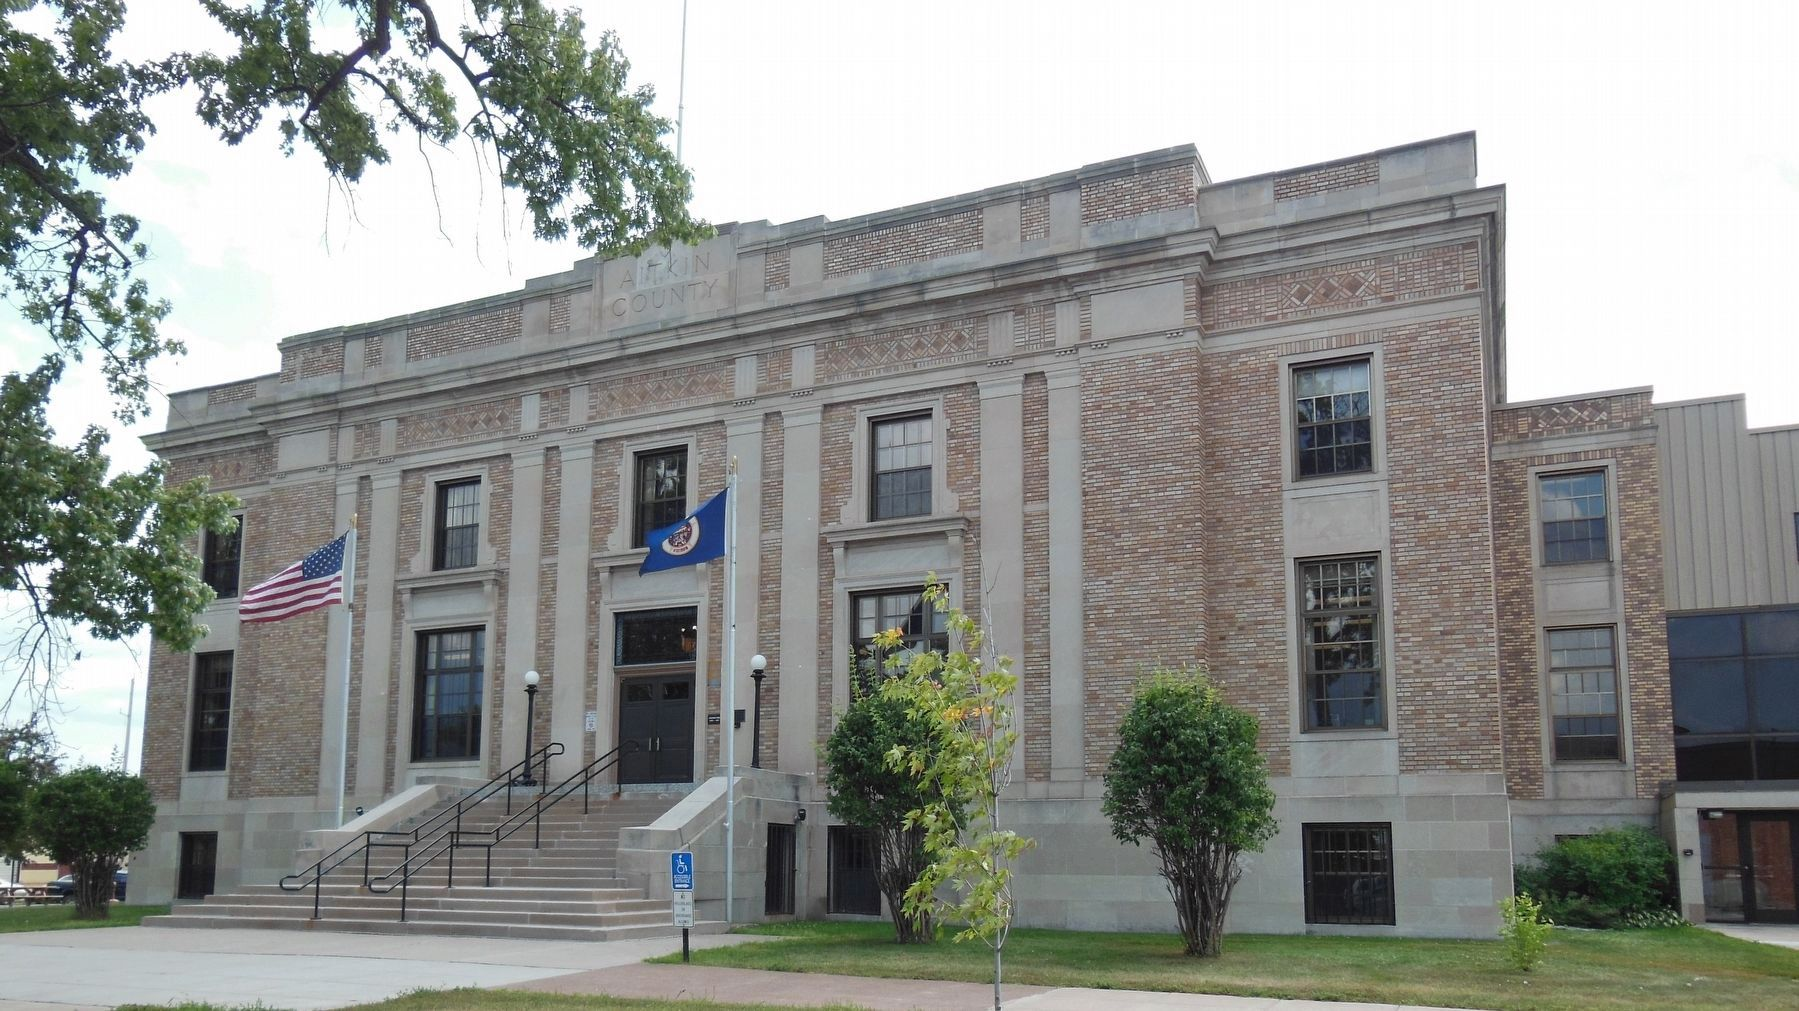 Aitkin County Courthouse (<b><i>front view</b></i>) image. Click for full size.